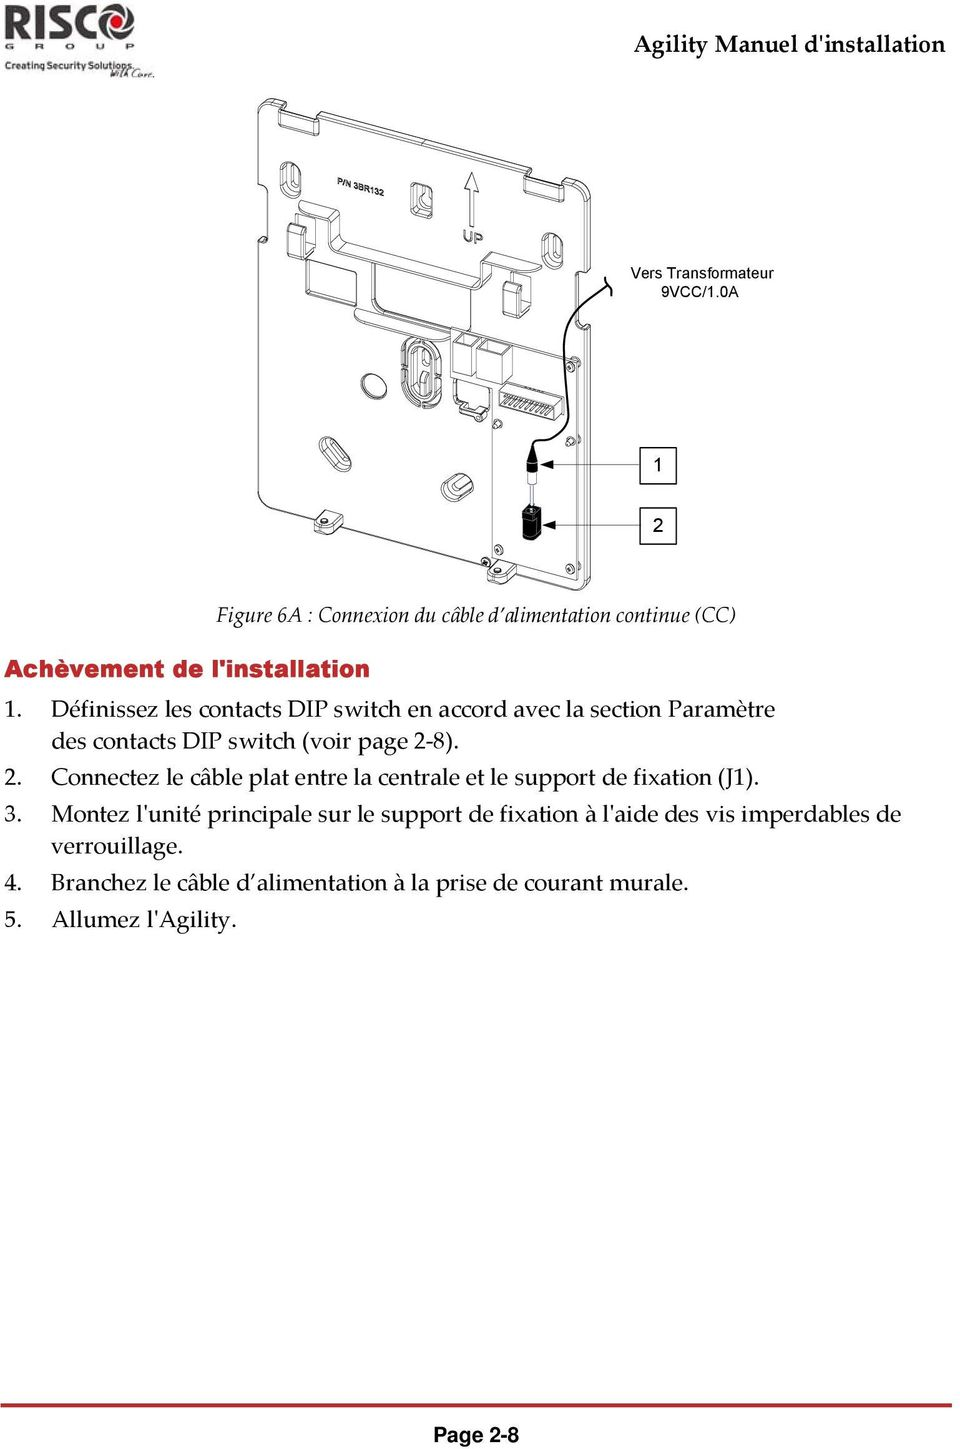 Définissez les contacts DIP switch en accord avec la section Paramètre des contacts DIP switch (voir page 2